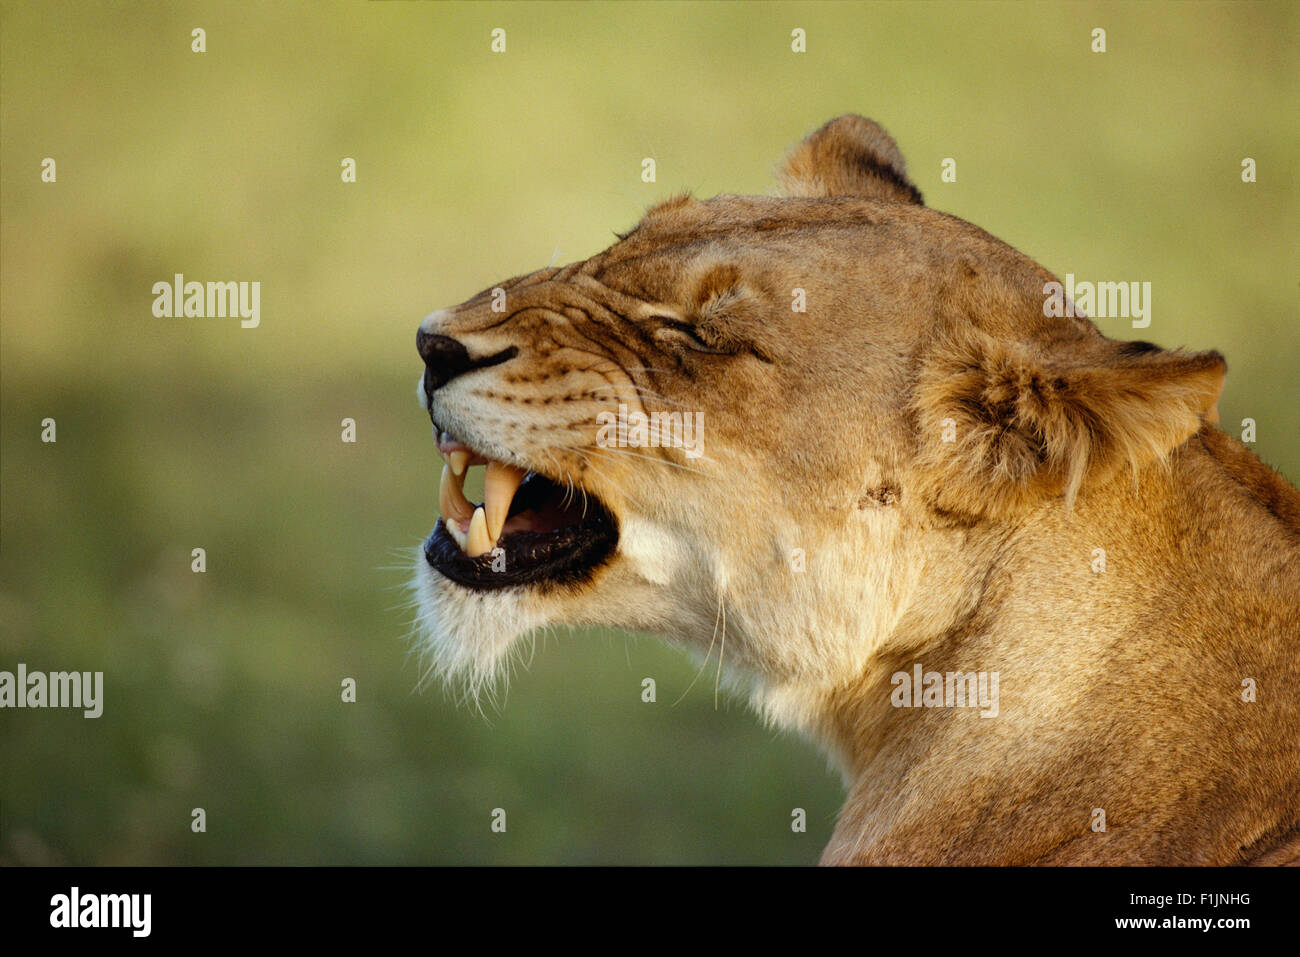 Lioness Growling - Stock Image